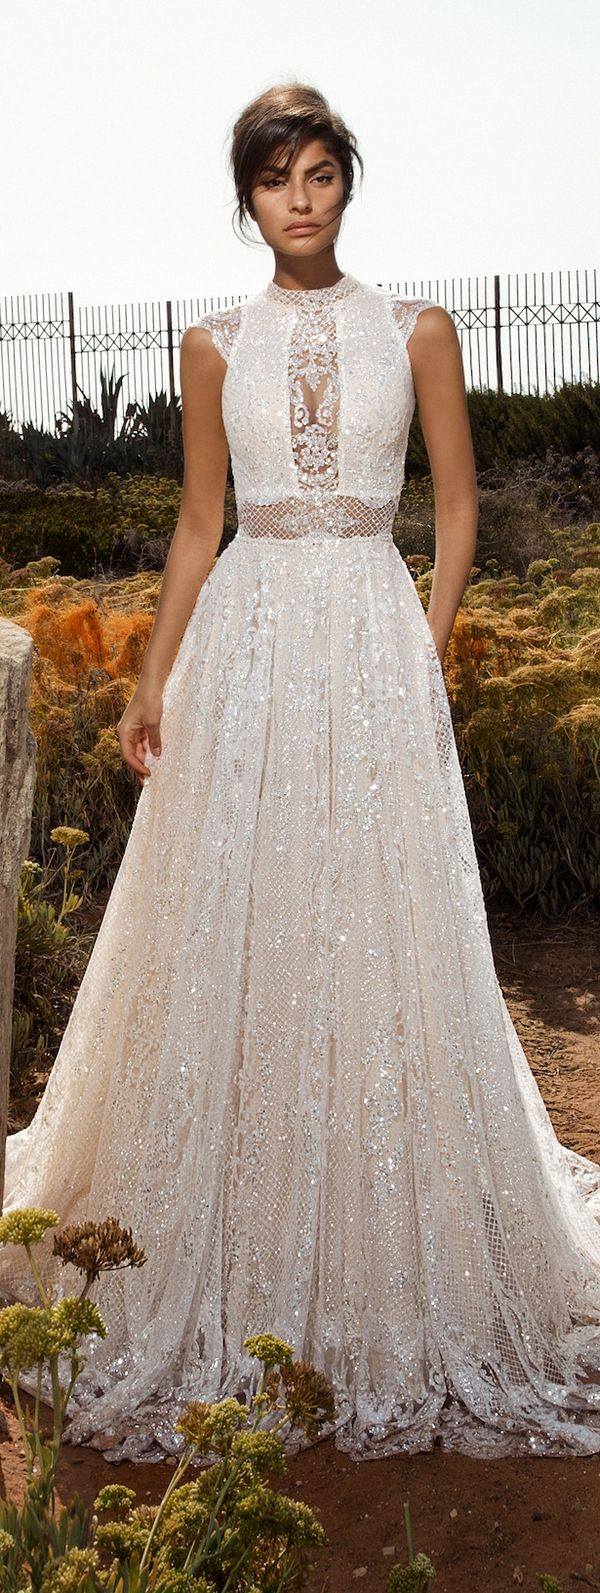 1000  ideas about Fall Wedding Gowns on Pinterest  Elegant ...